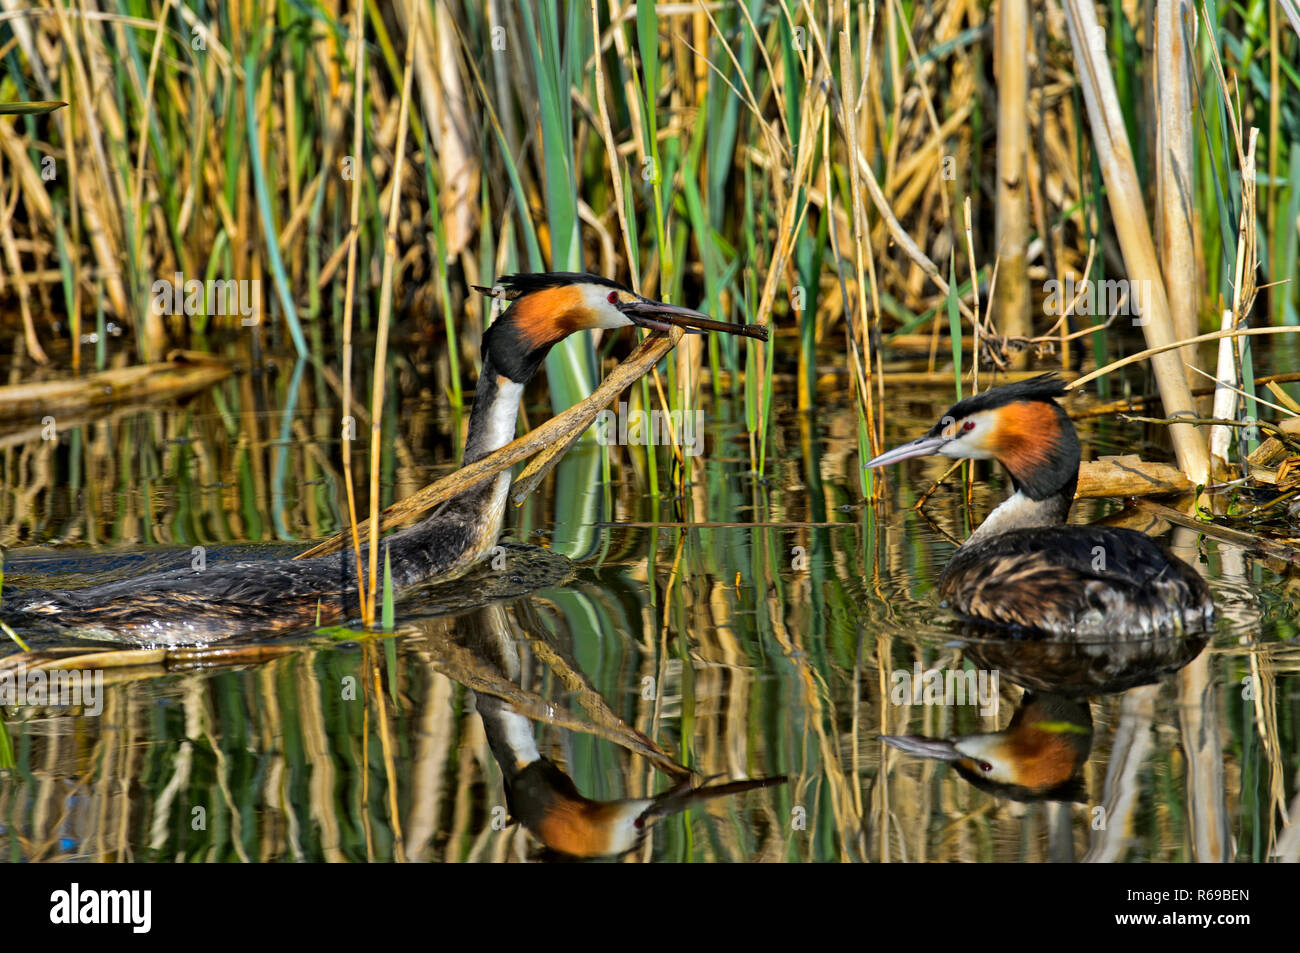 Great Crested Grebe Podiceps Cristatus Bringing Nesting Material To The Nest, Netherlands Stock Photo